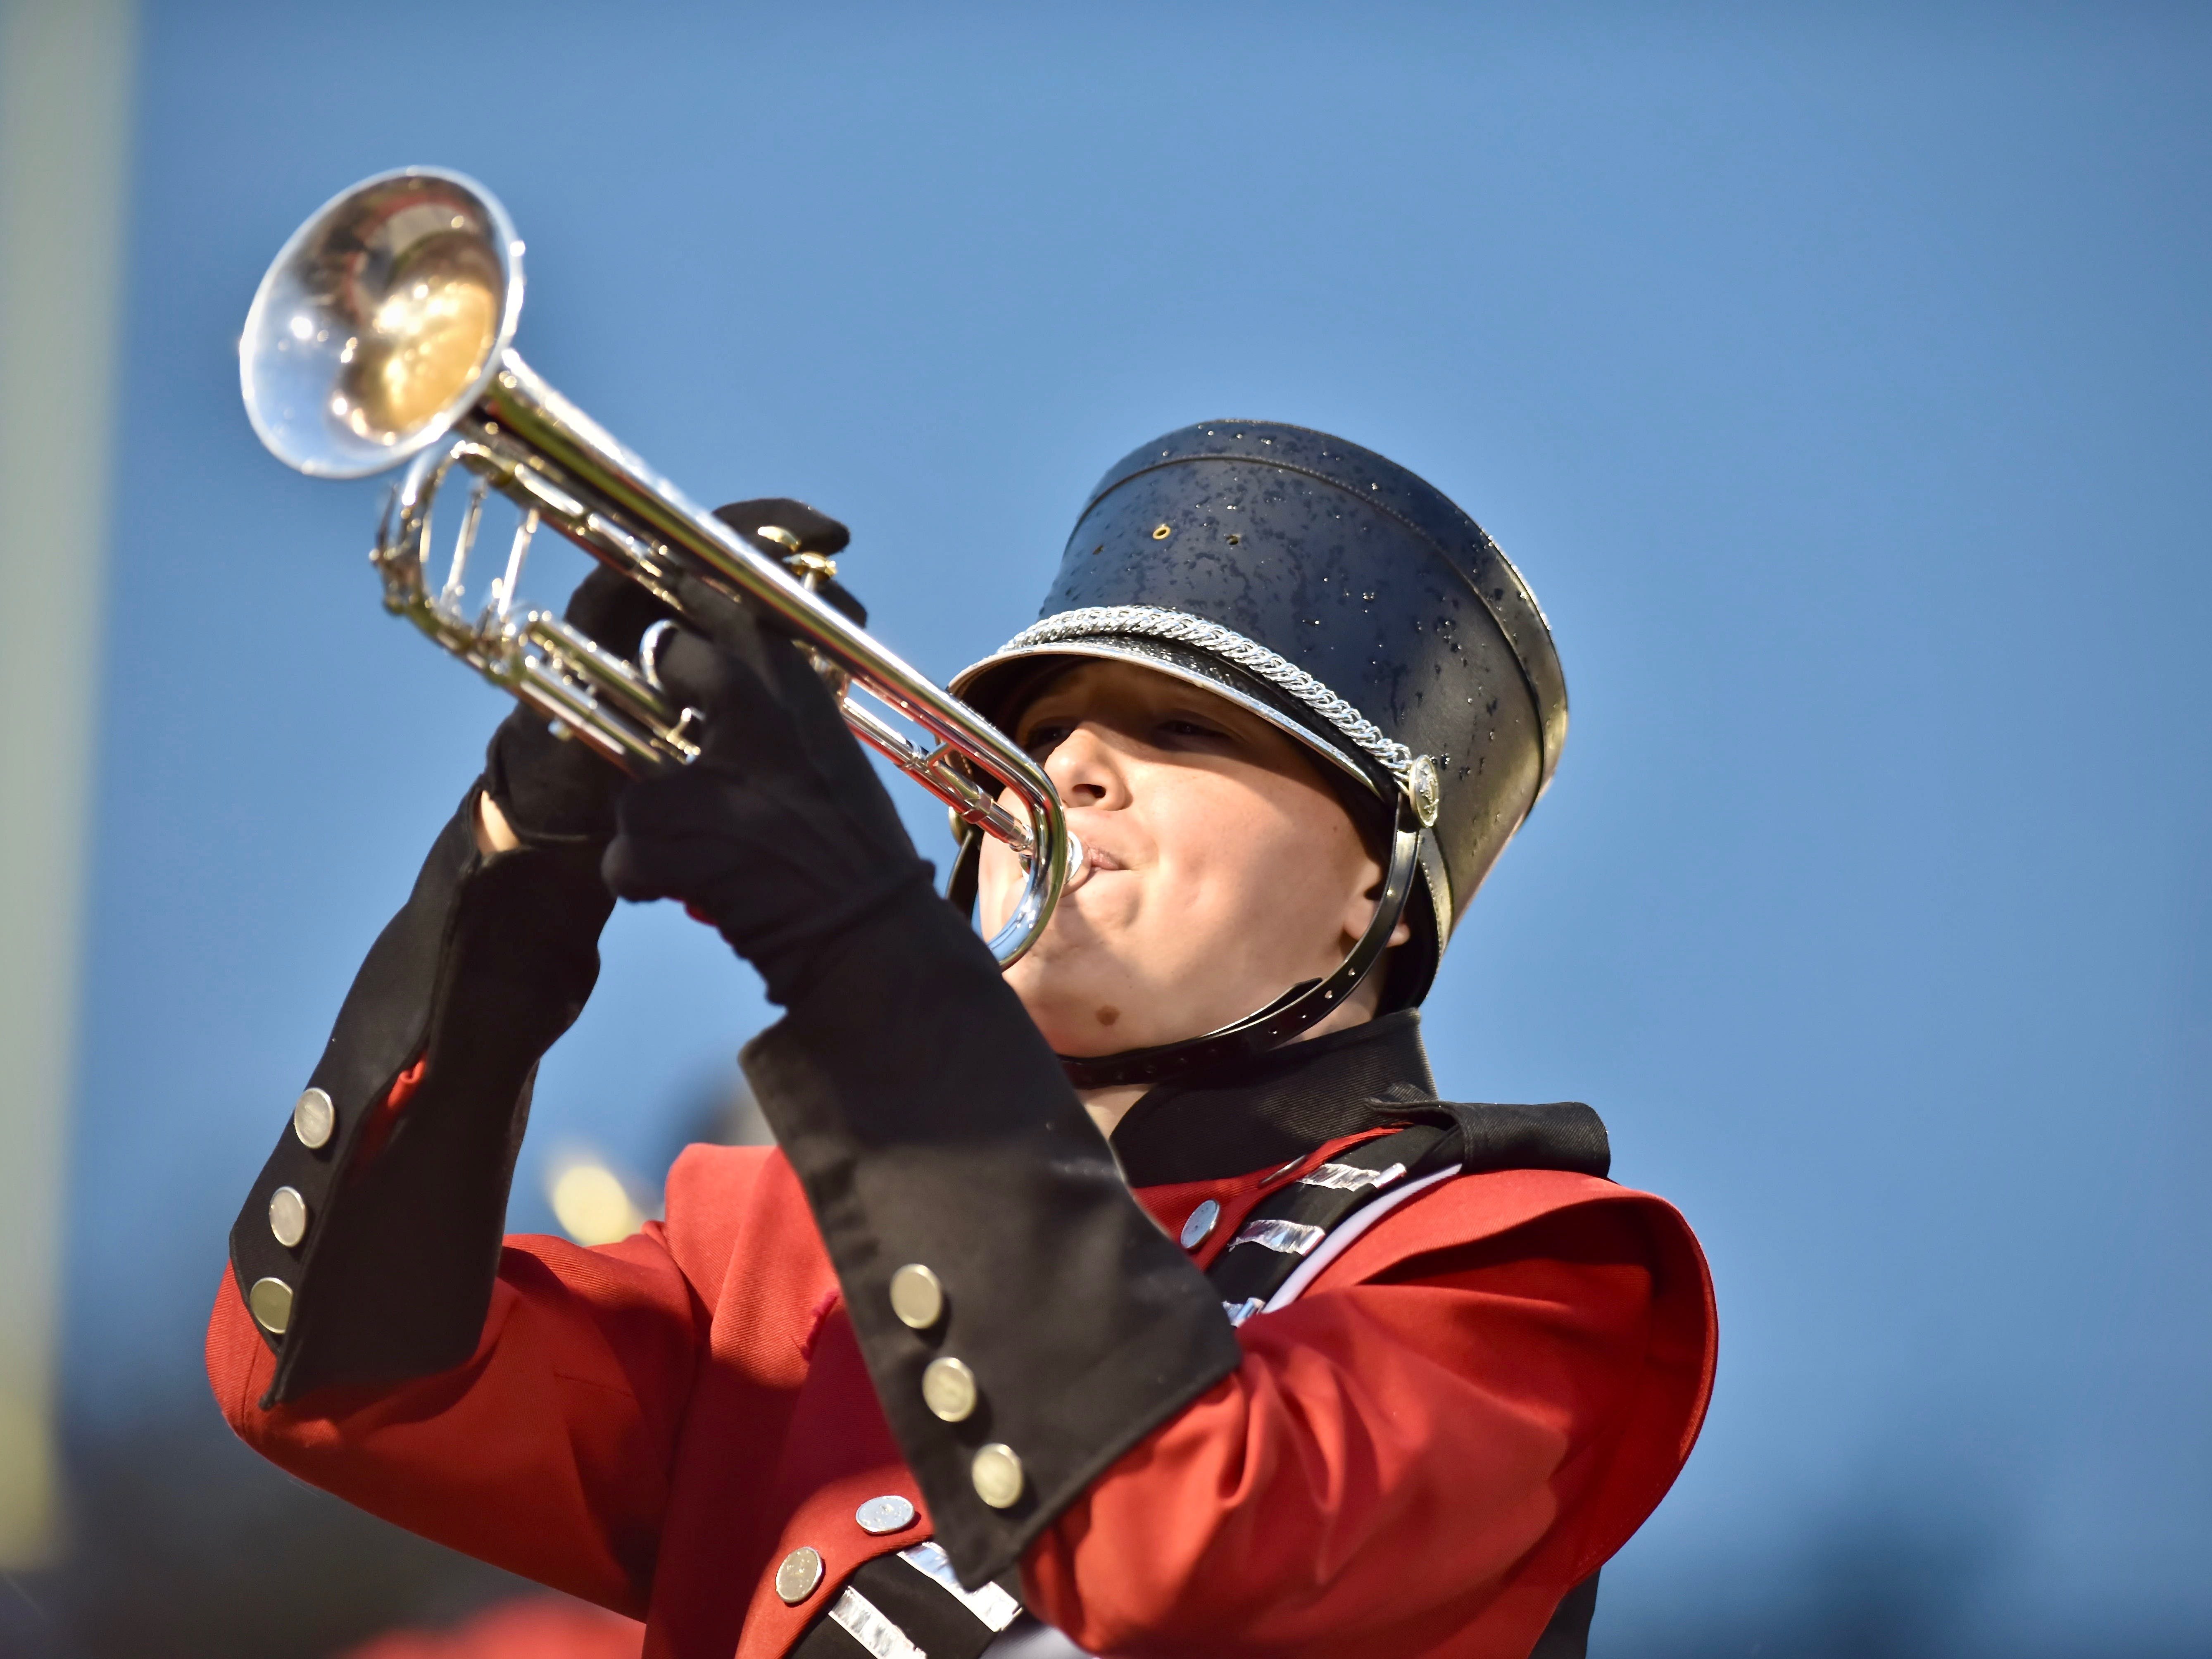 A member of the Colerain marching band performs during the National Anthem Friday, Oct. 19, 2018 at Colerain High School